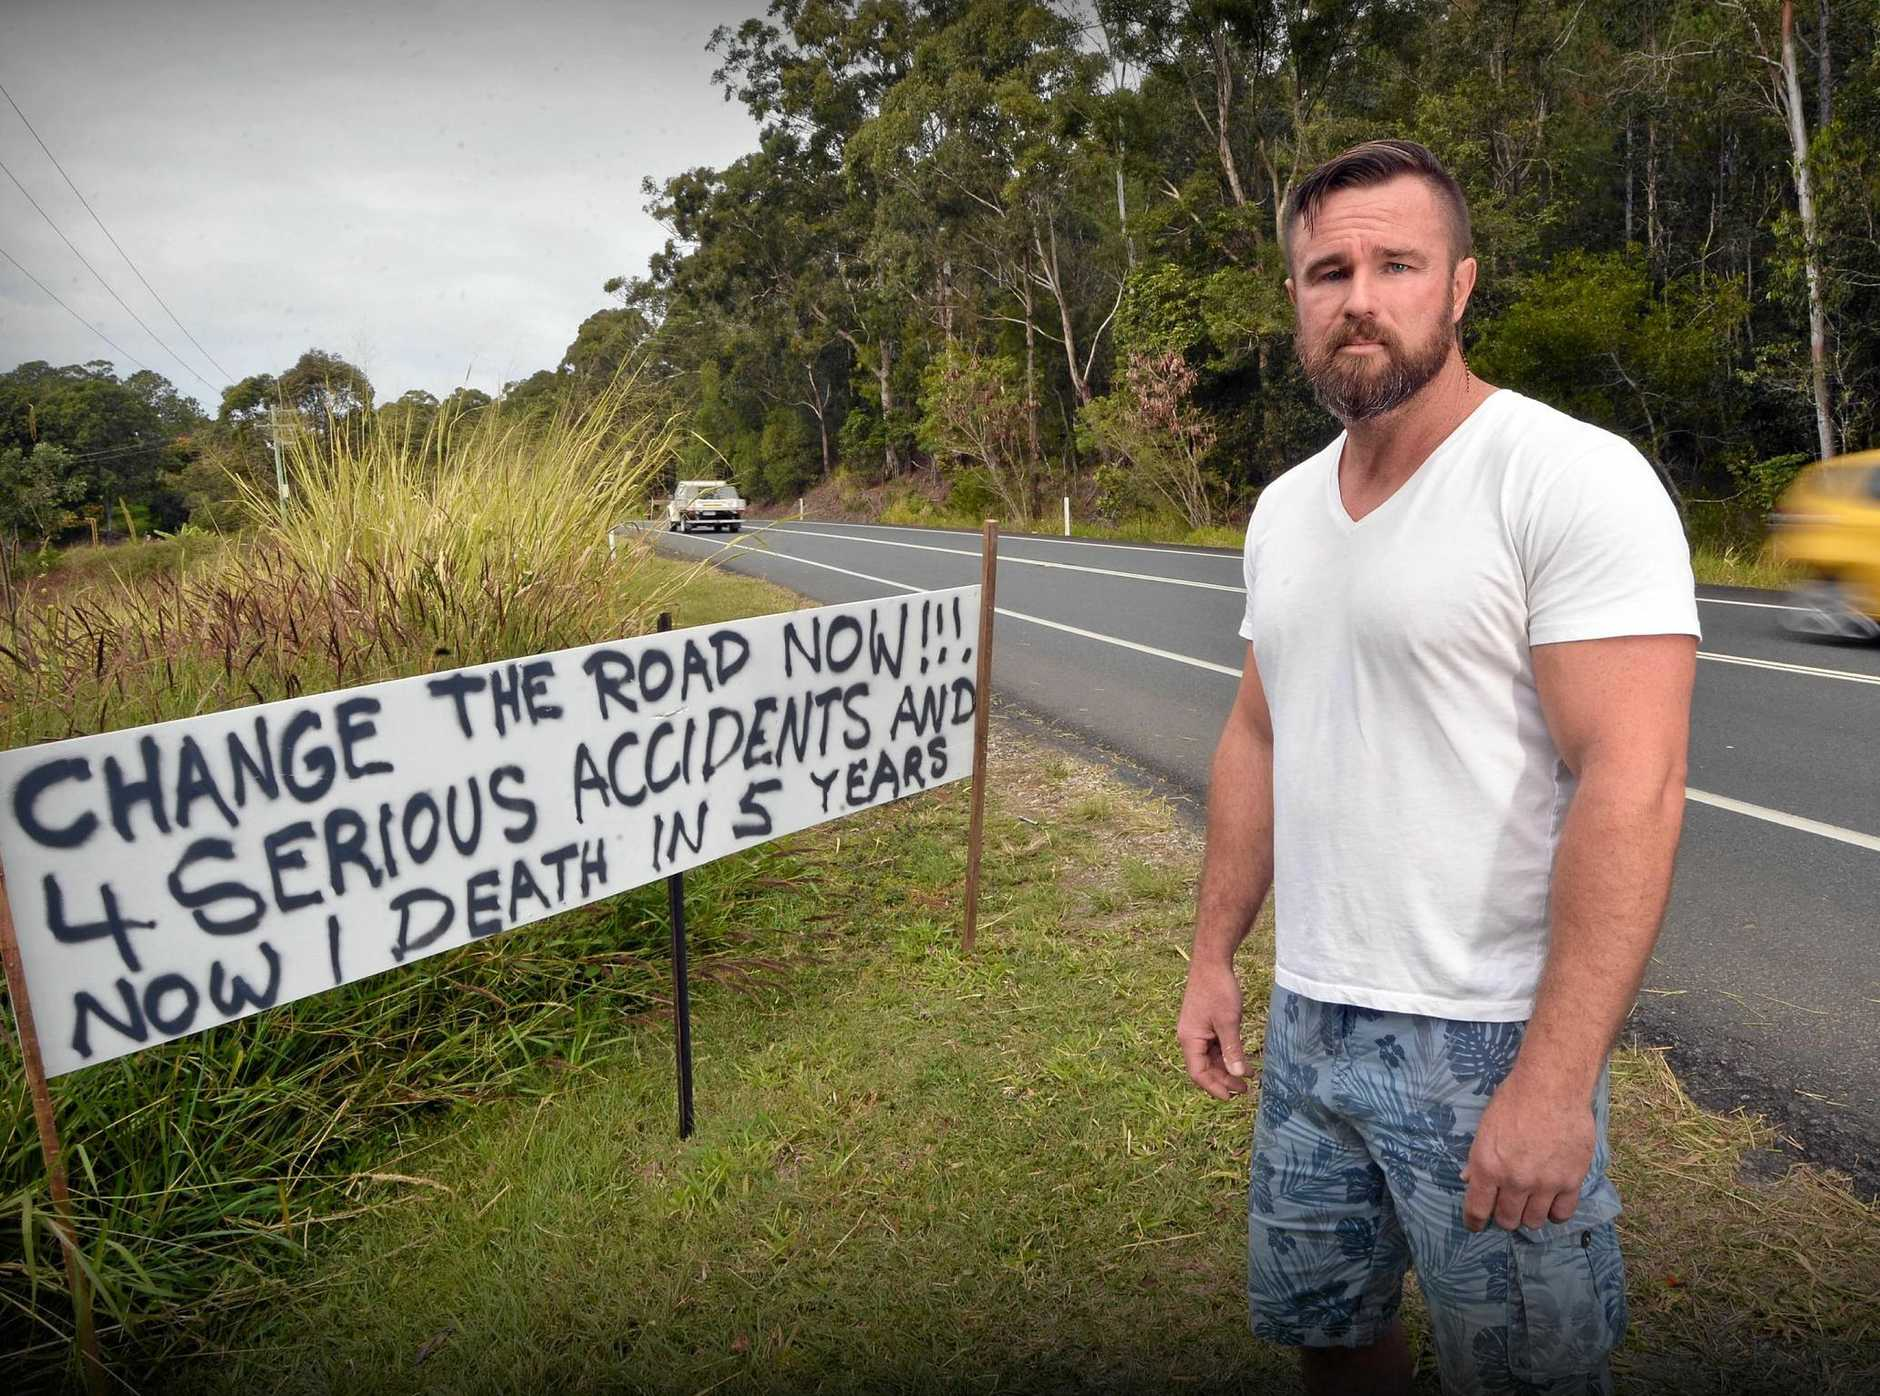 Resident of Eumundi Joshua Wiersma wants road fixed and speed limit lowered after attending a serious crash in front of his place yesterday.